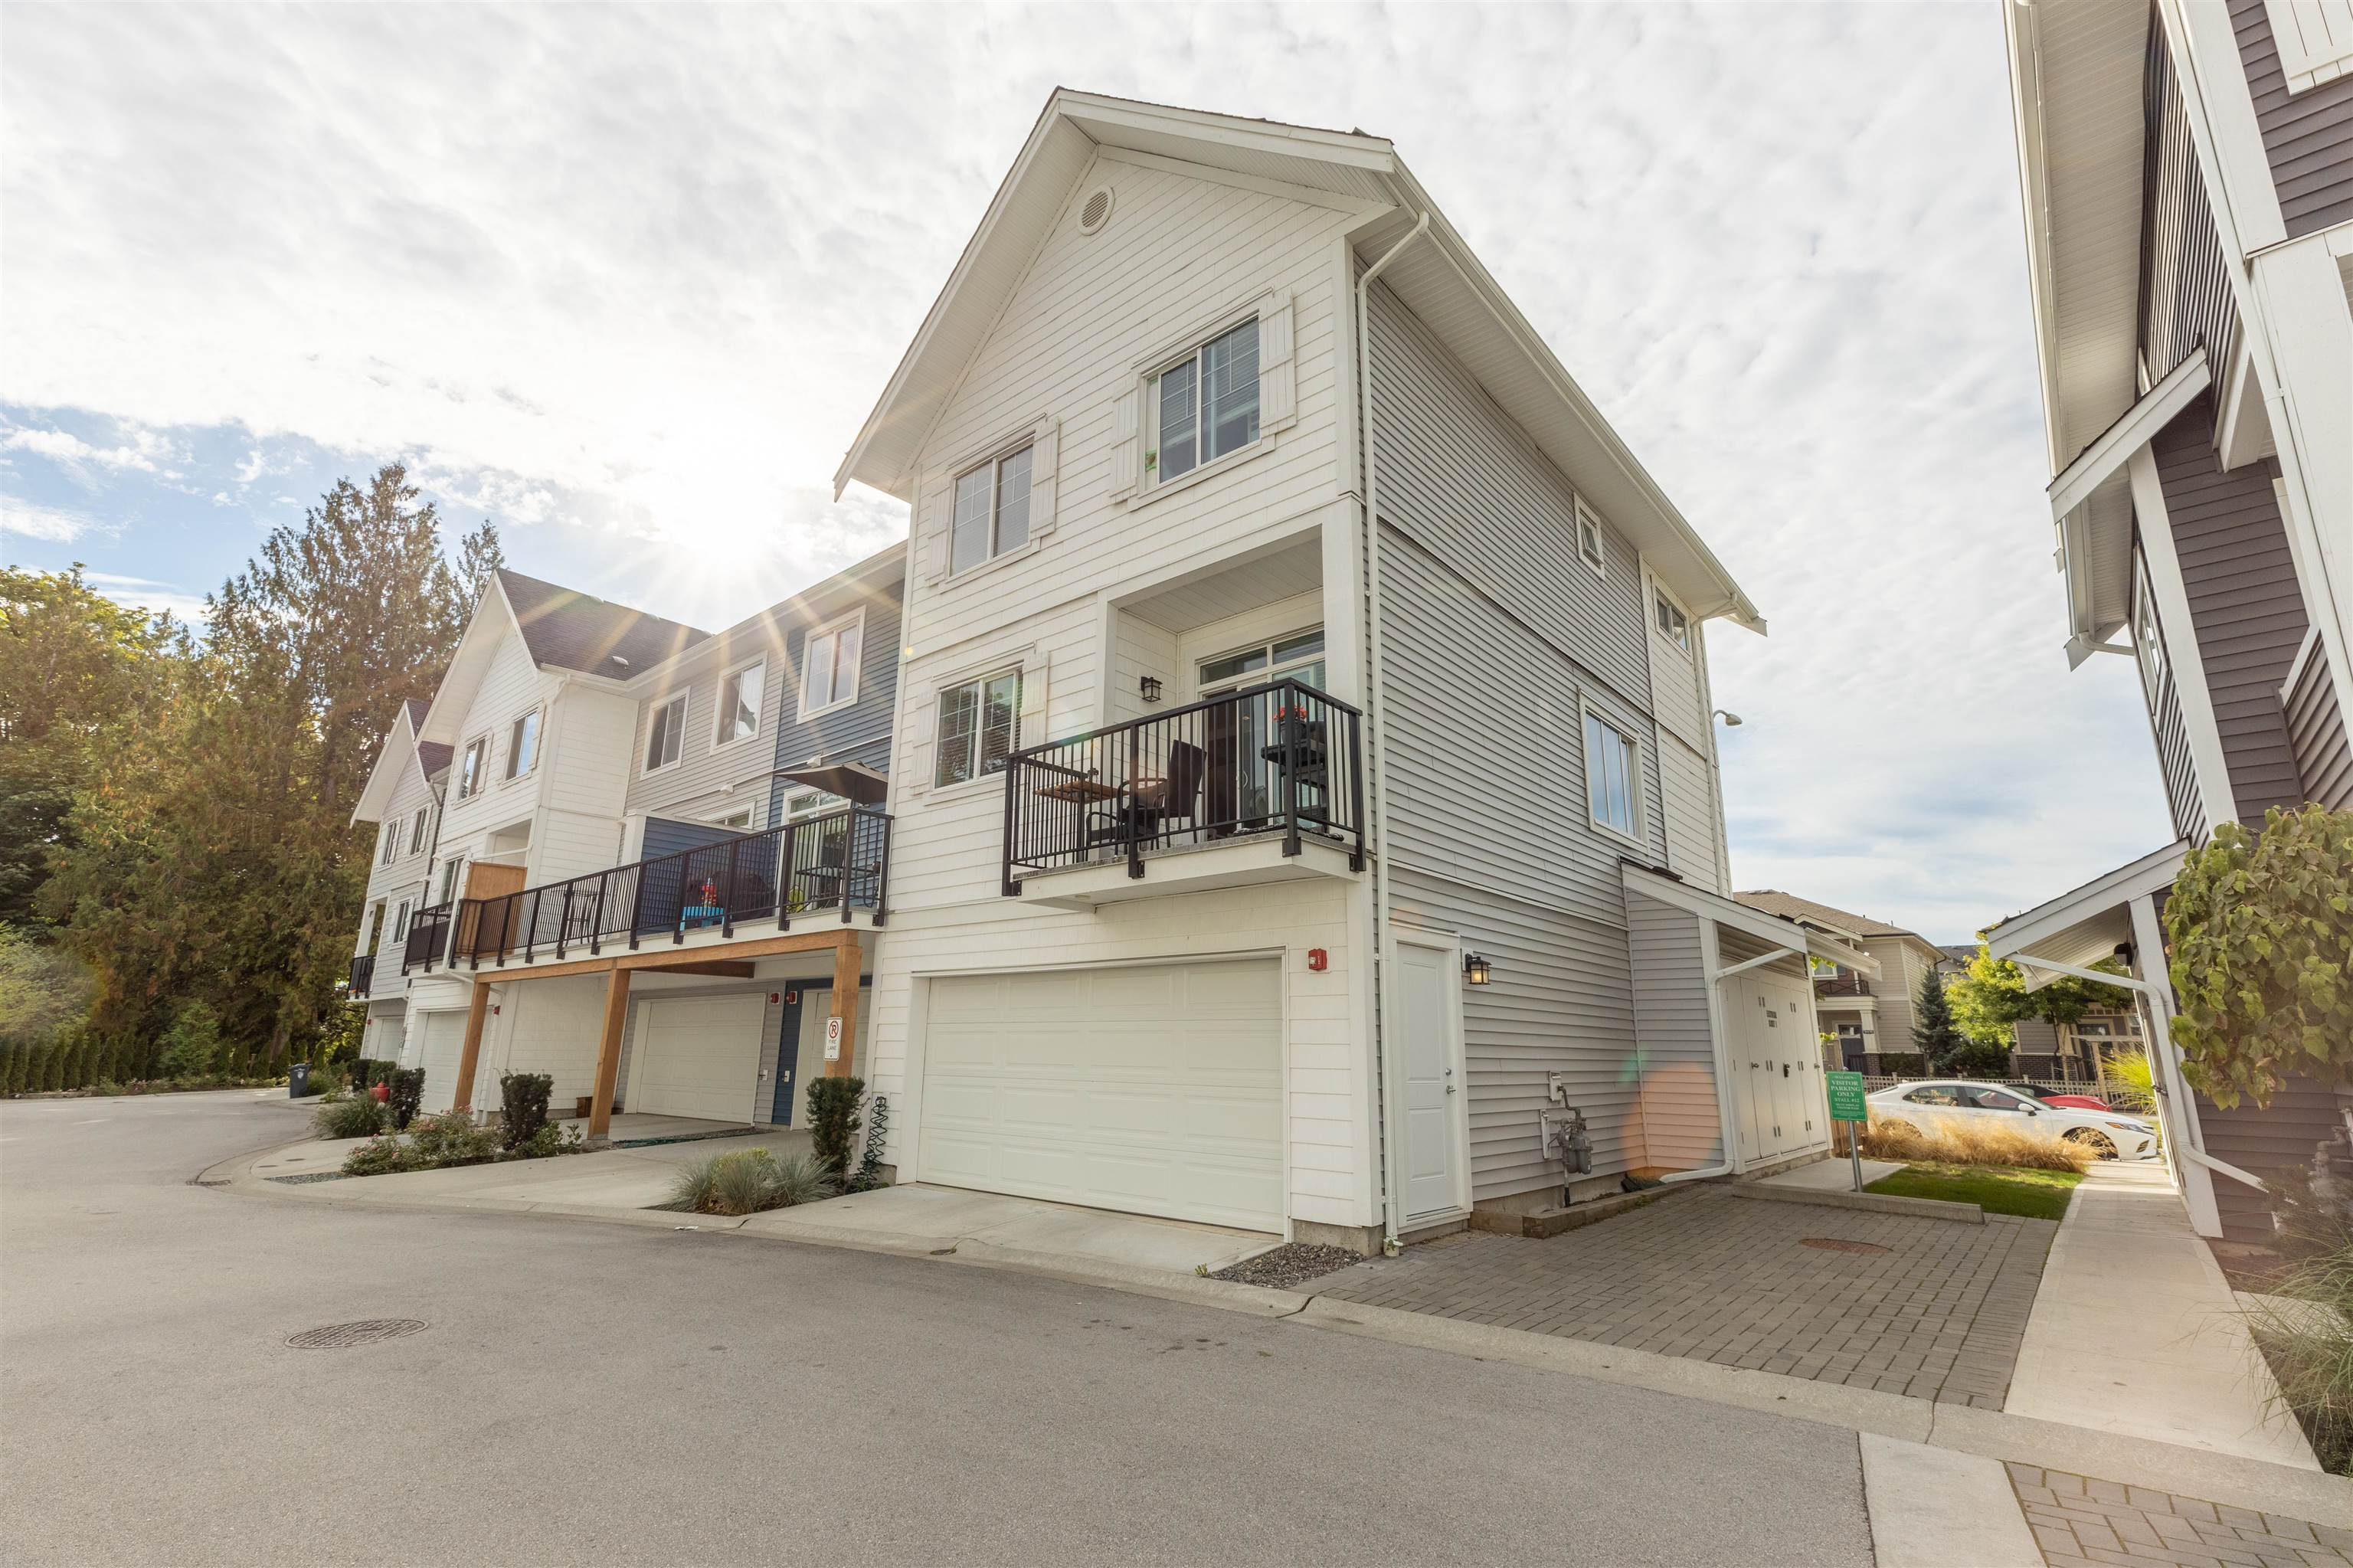 6 20451 84 AVENUE - Willoughby Heights Townhouse for sale, 4 Bedrooms (R2616635) - #5